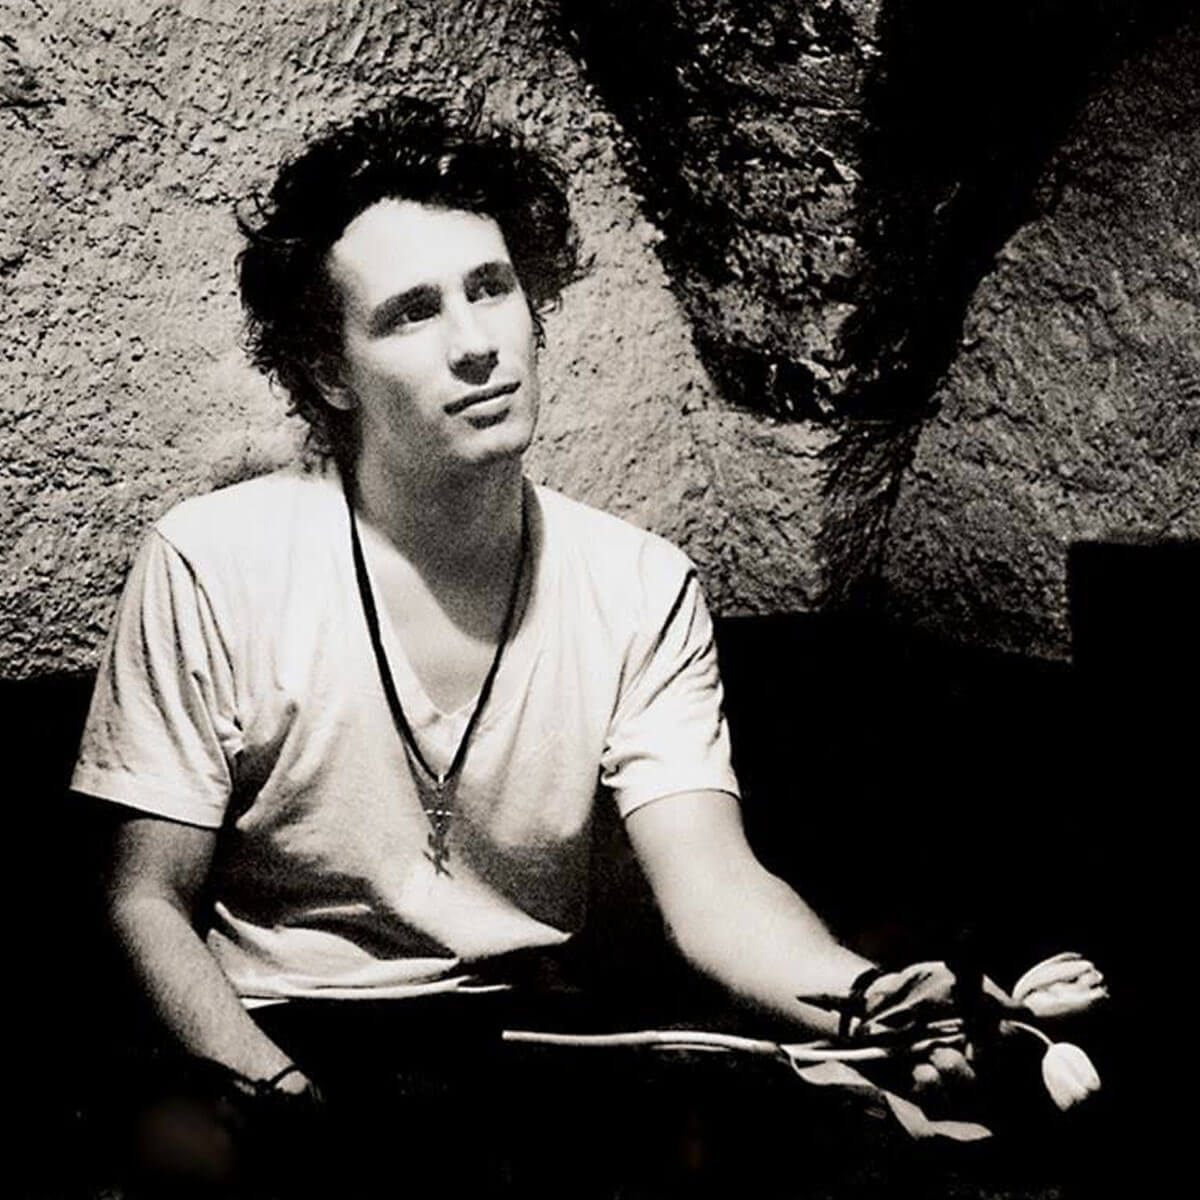 JeffBuckley2.jpg